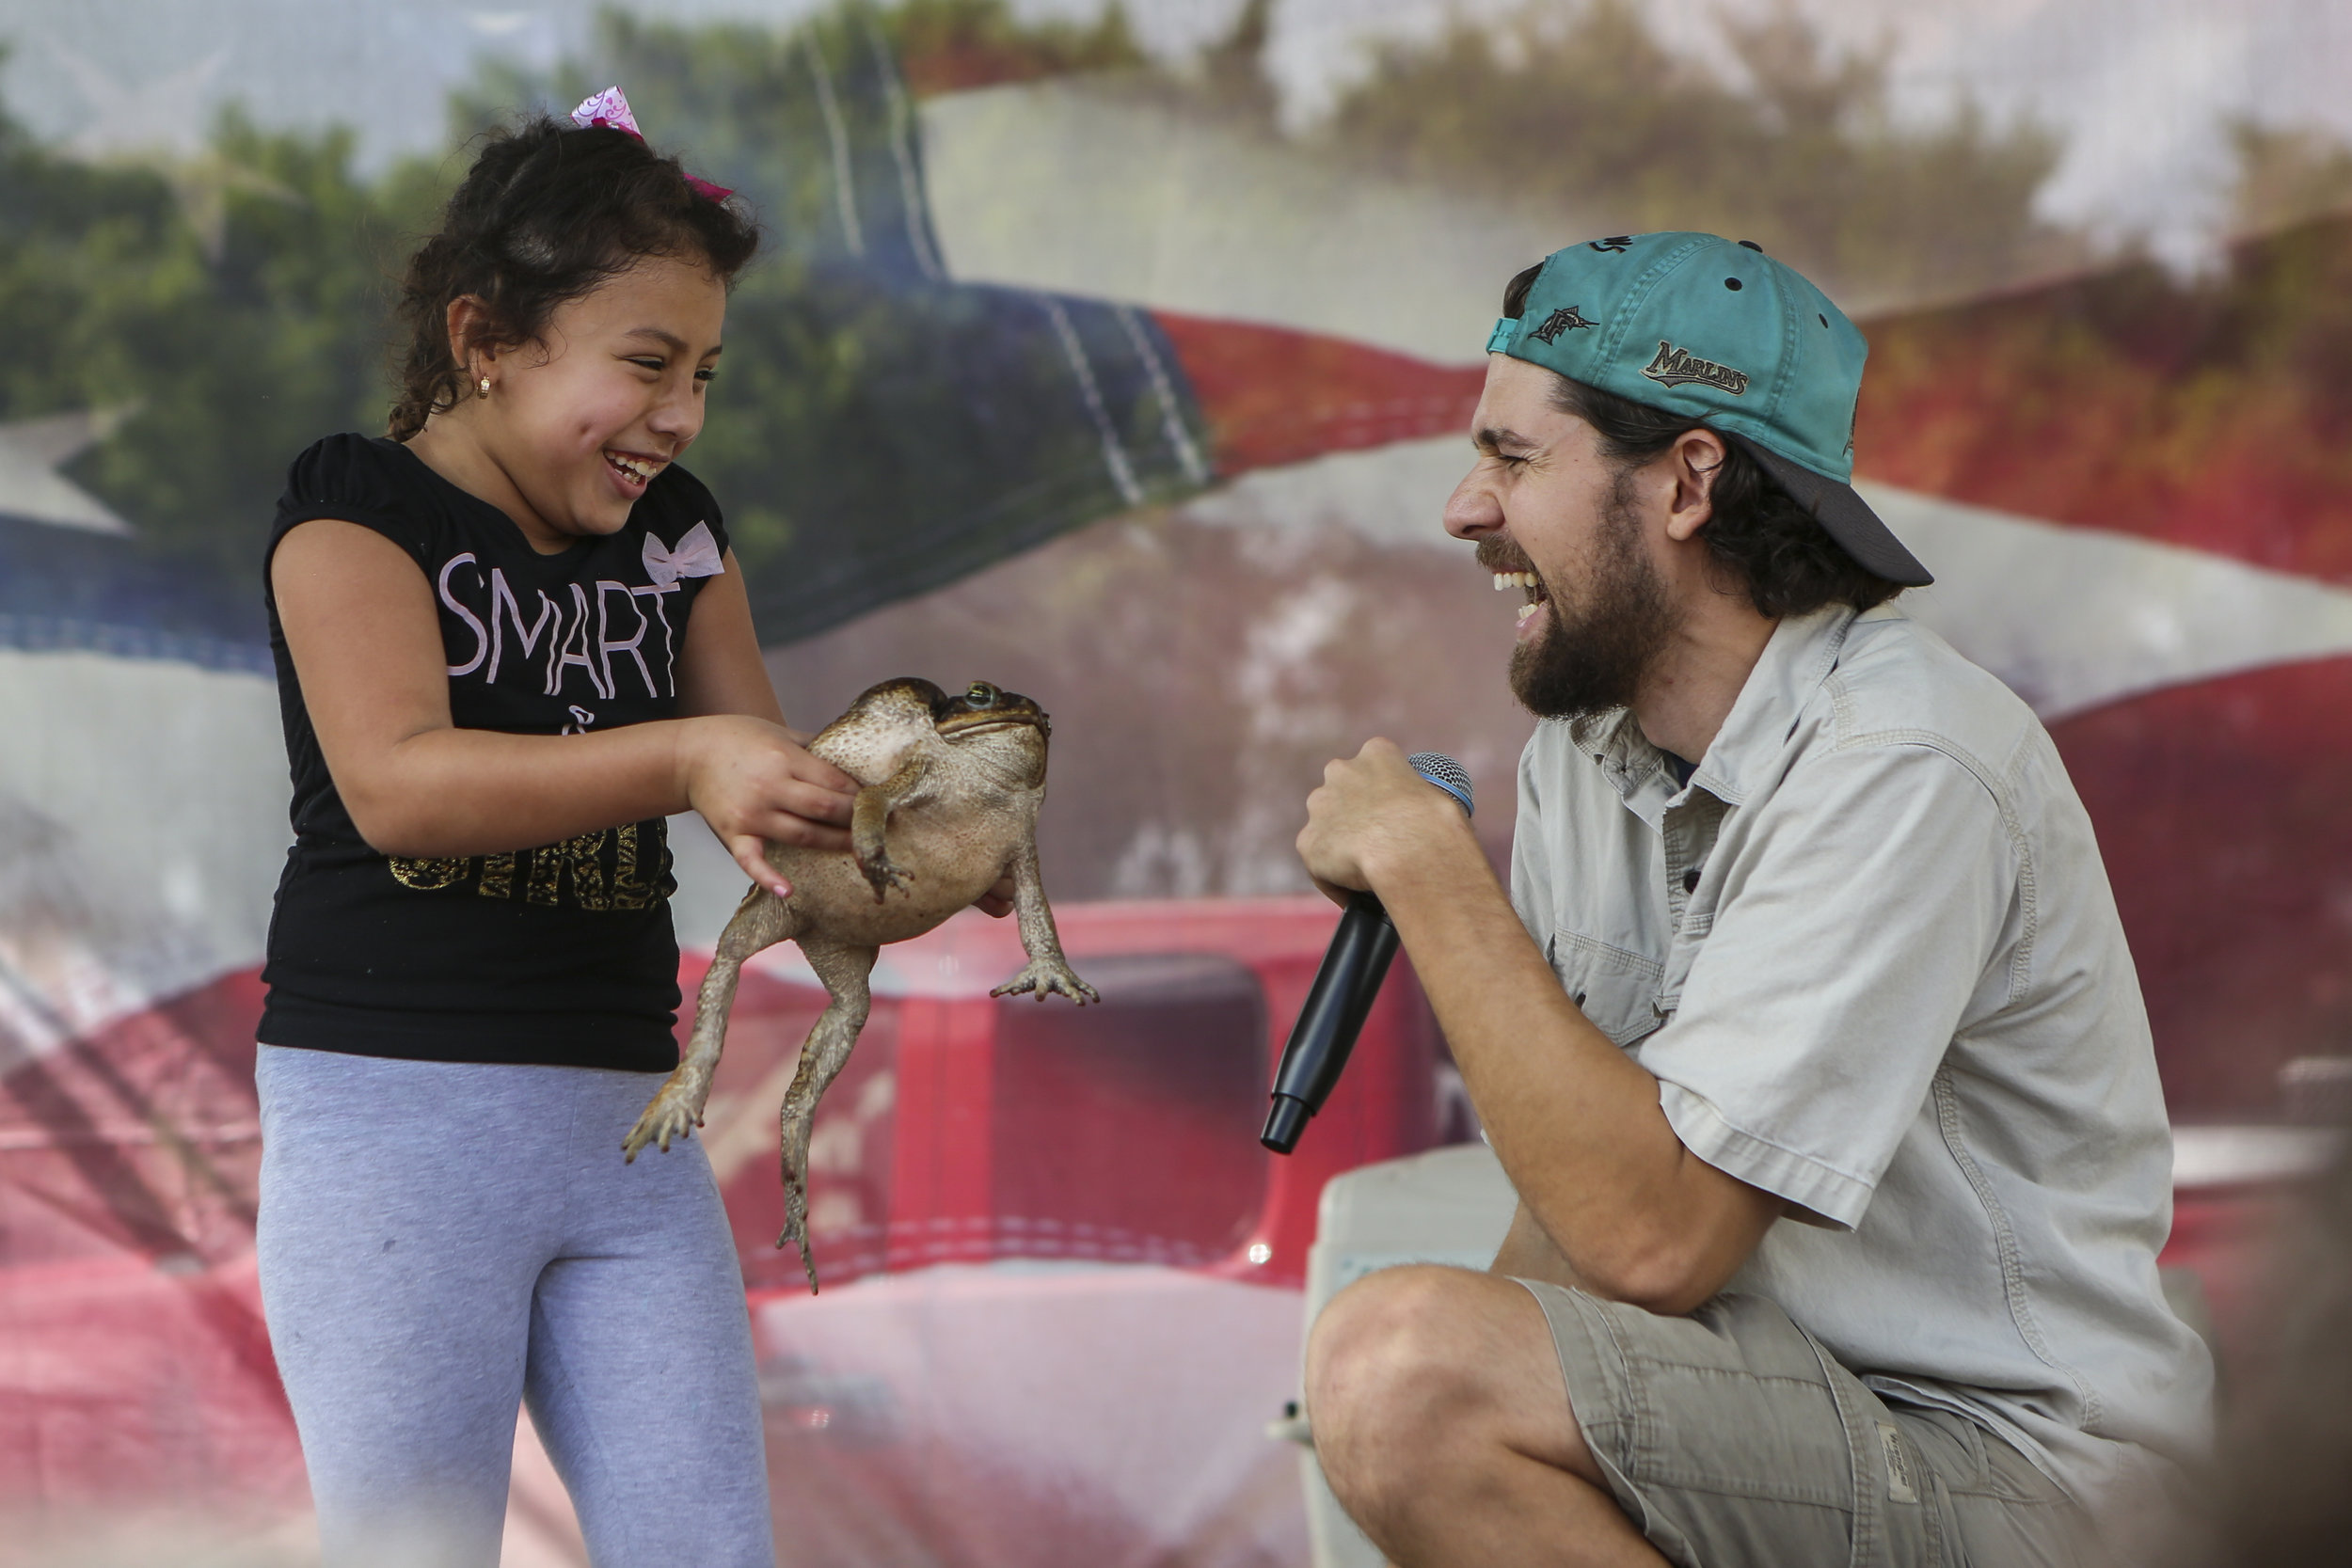 Ashley Castillo, 6, and Raul Tamayo, 24, react while Castillo holds a cane toad during the 29th annual Dodge City Christmas Party in Richmond West on Sunday, December 18, 2016. More than a 1,000 underprivileged kids throughout South Florida were expected to attend the event, which featured a variety of rides, a petting zoo and free food.